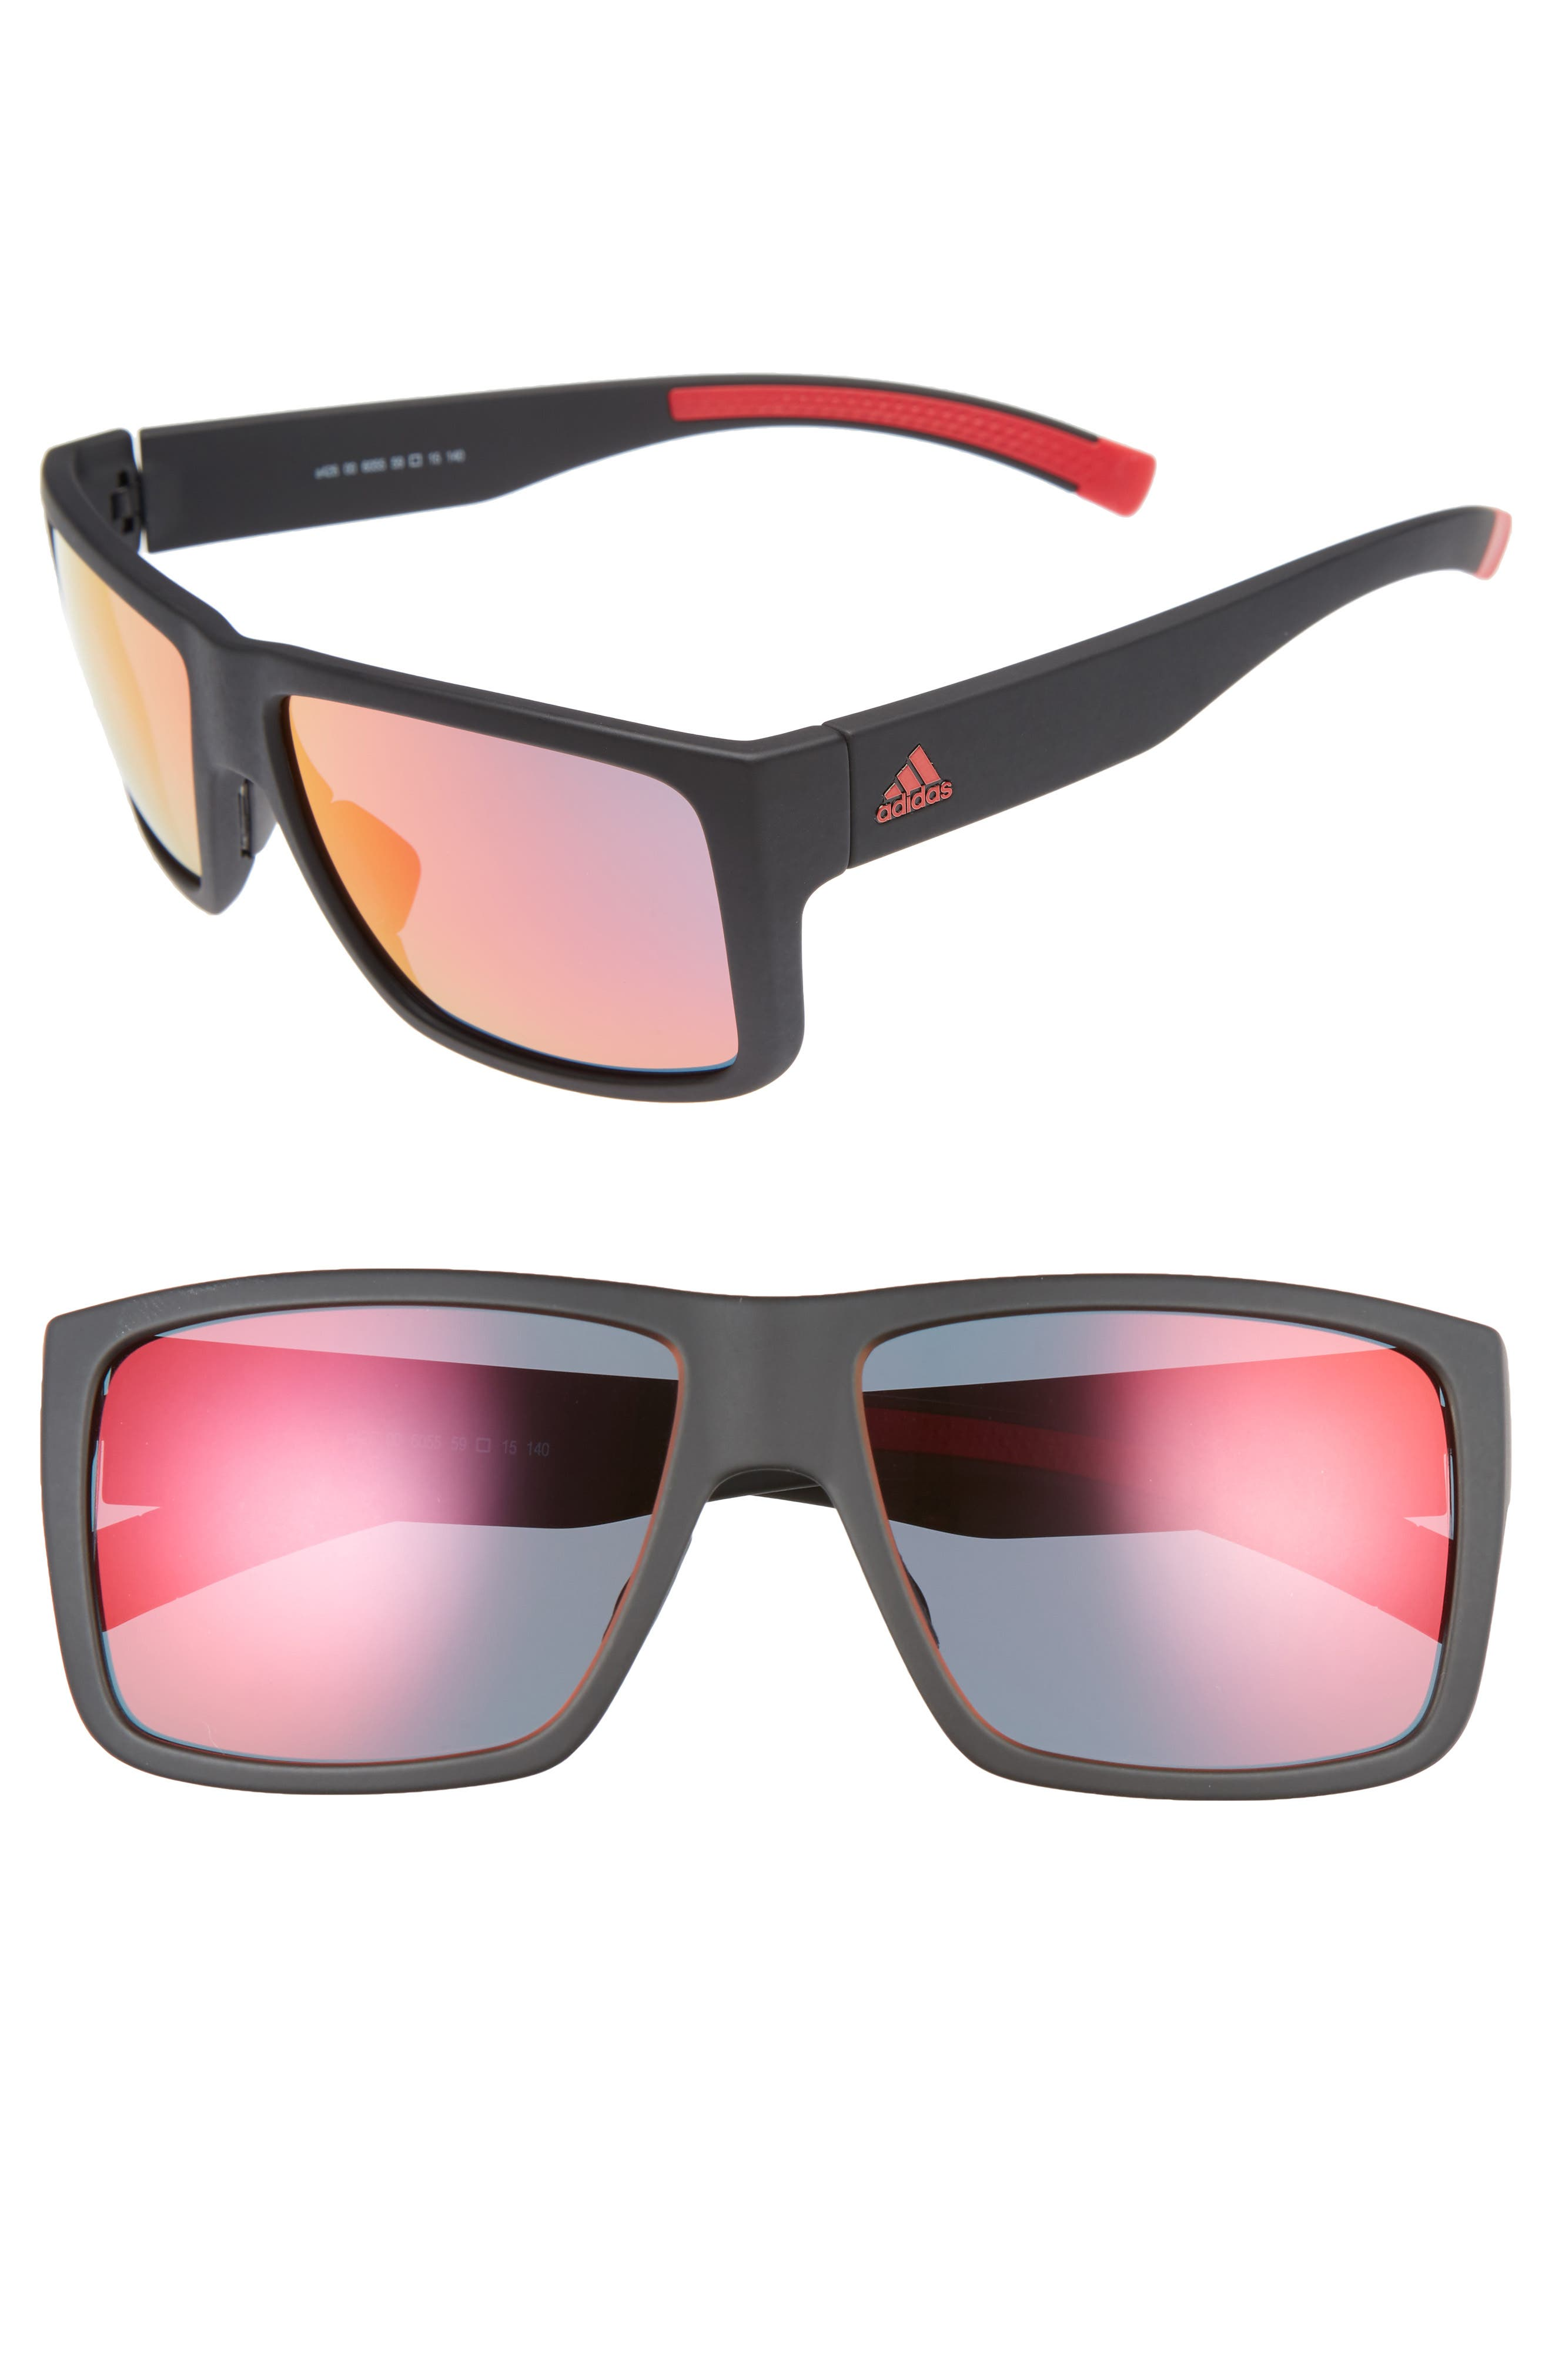 ADIDAS, Matic 59mm Sunglasses, Main thumbnail 1, color, BLACK MATTE/ RED MIRROR